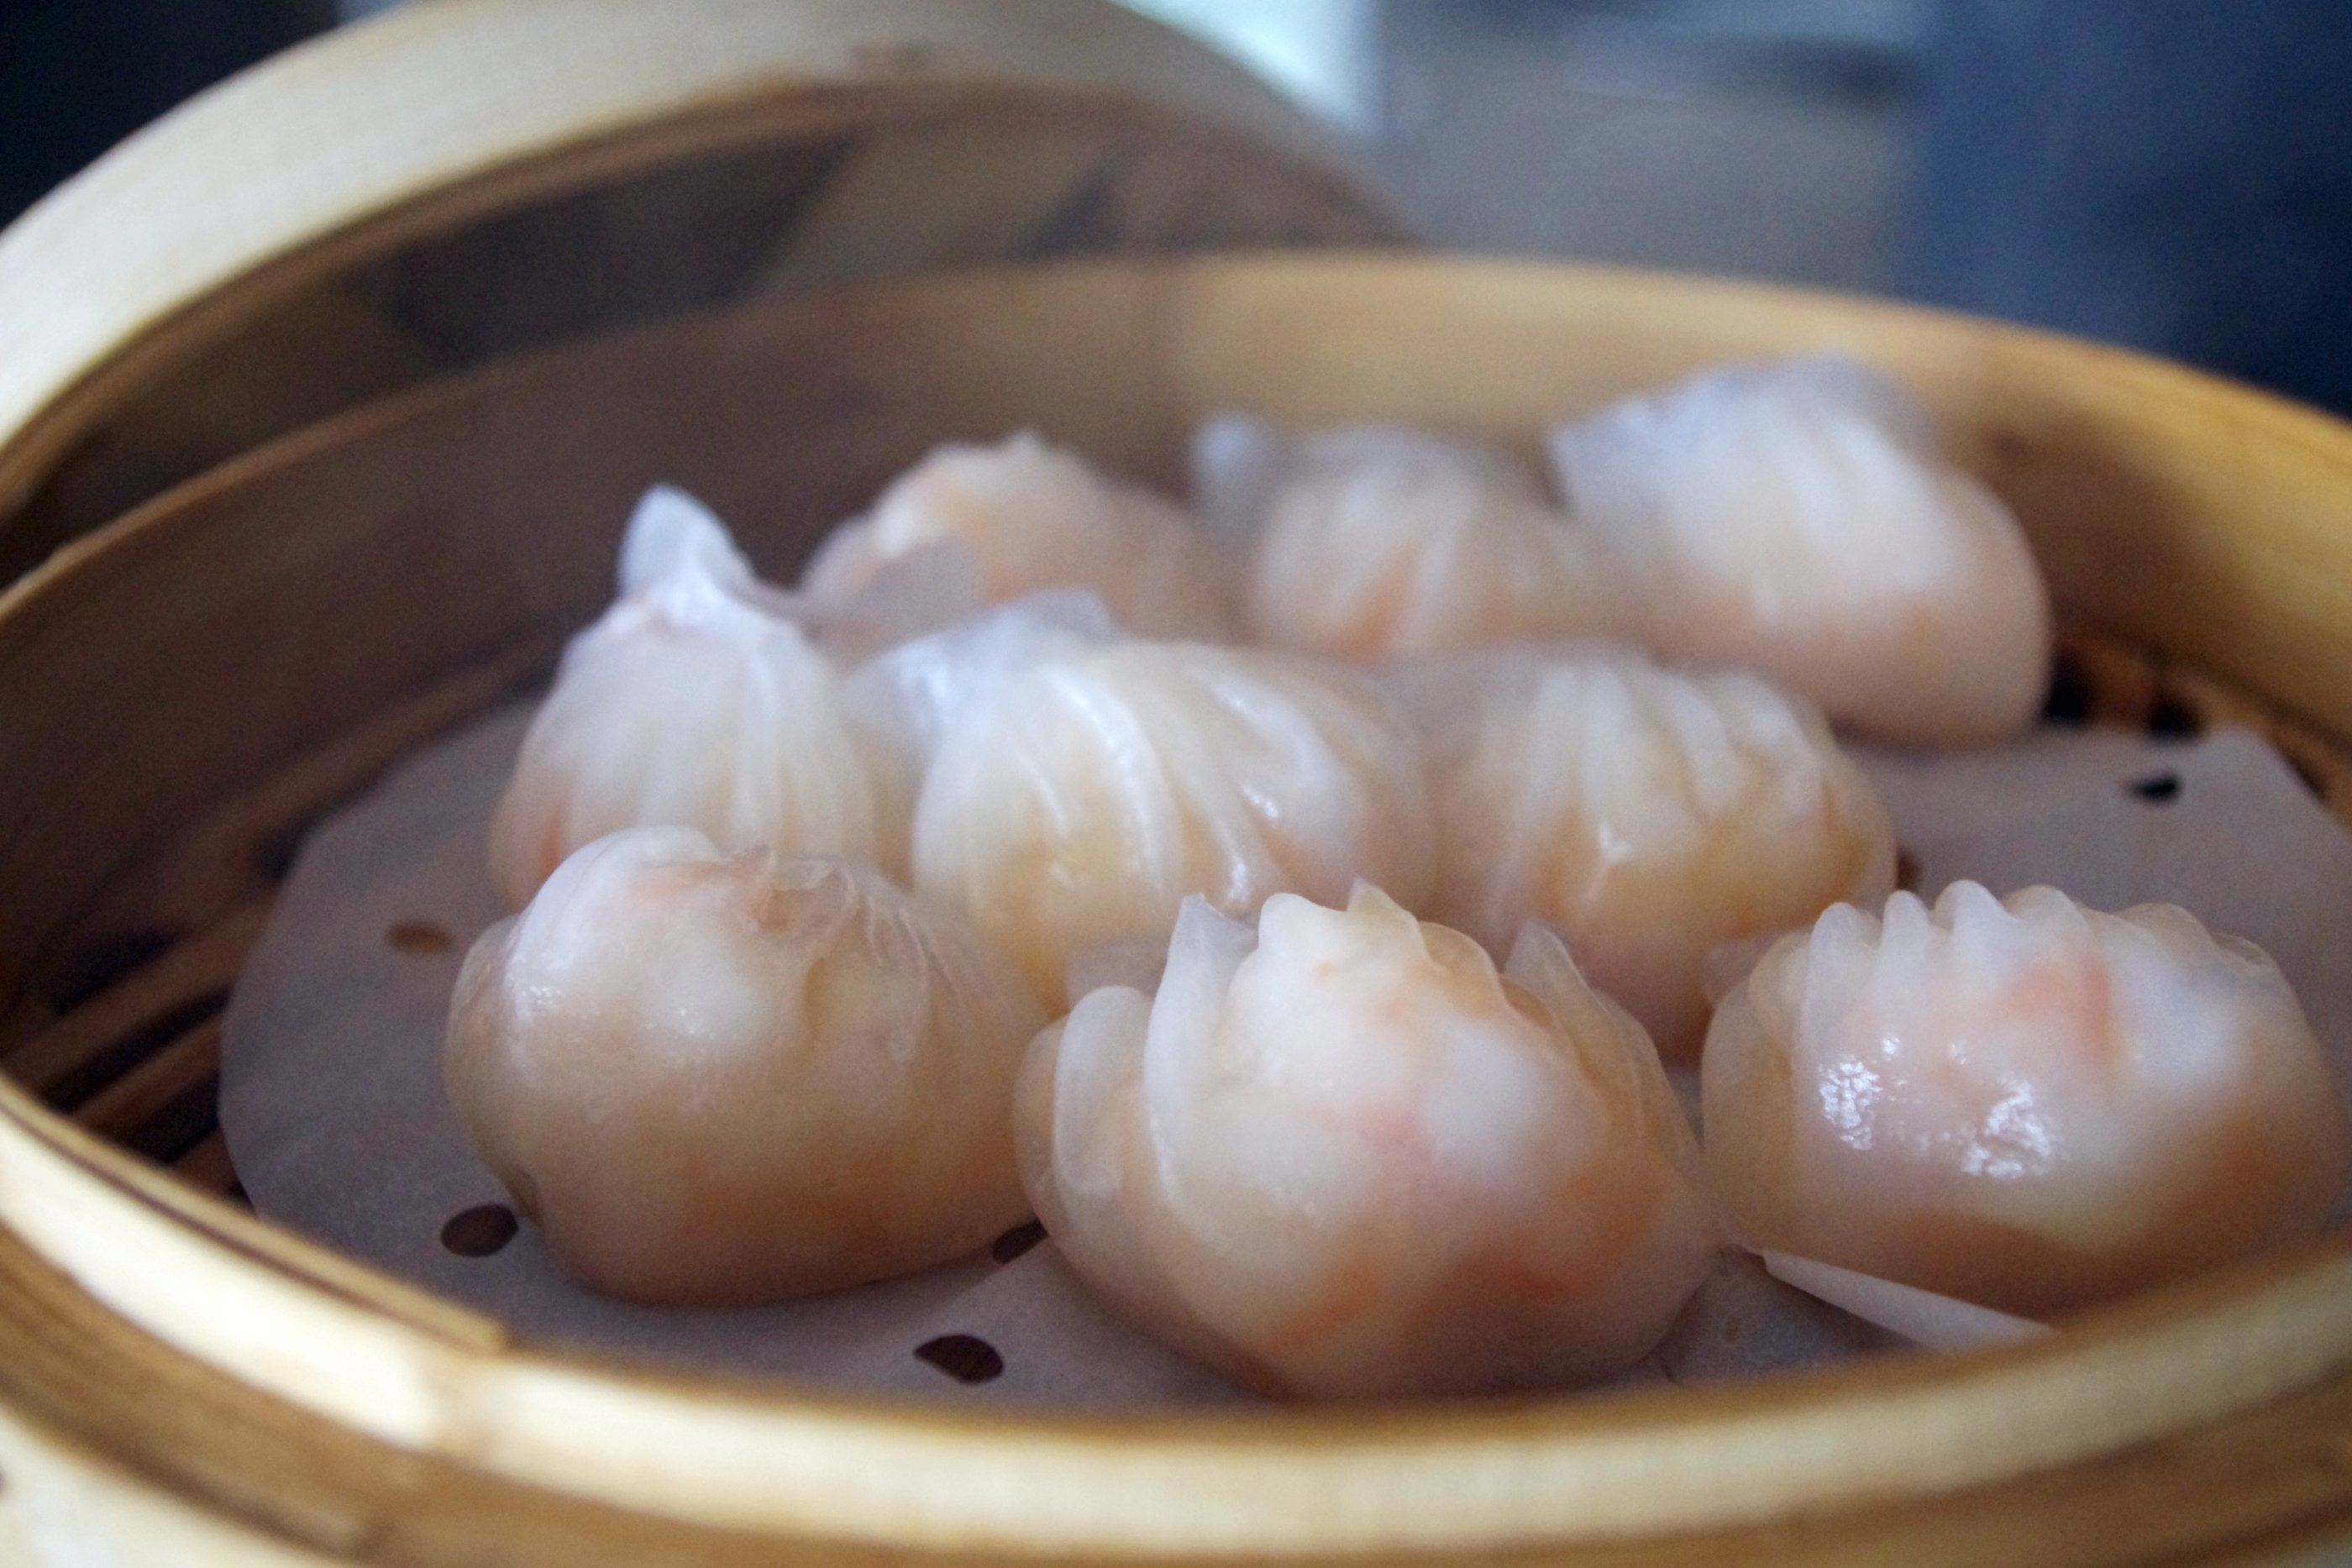 File:Shrimp dumplings.jpg - Wikimedia Commons